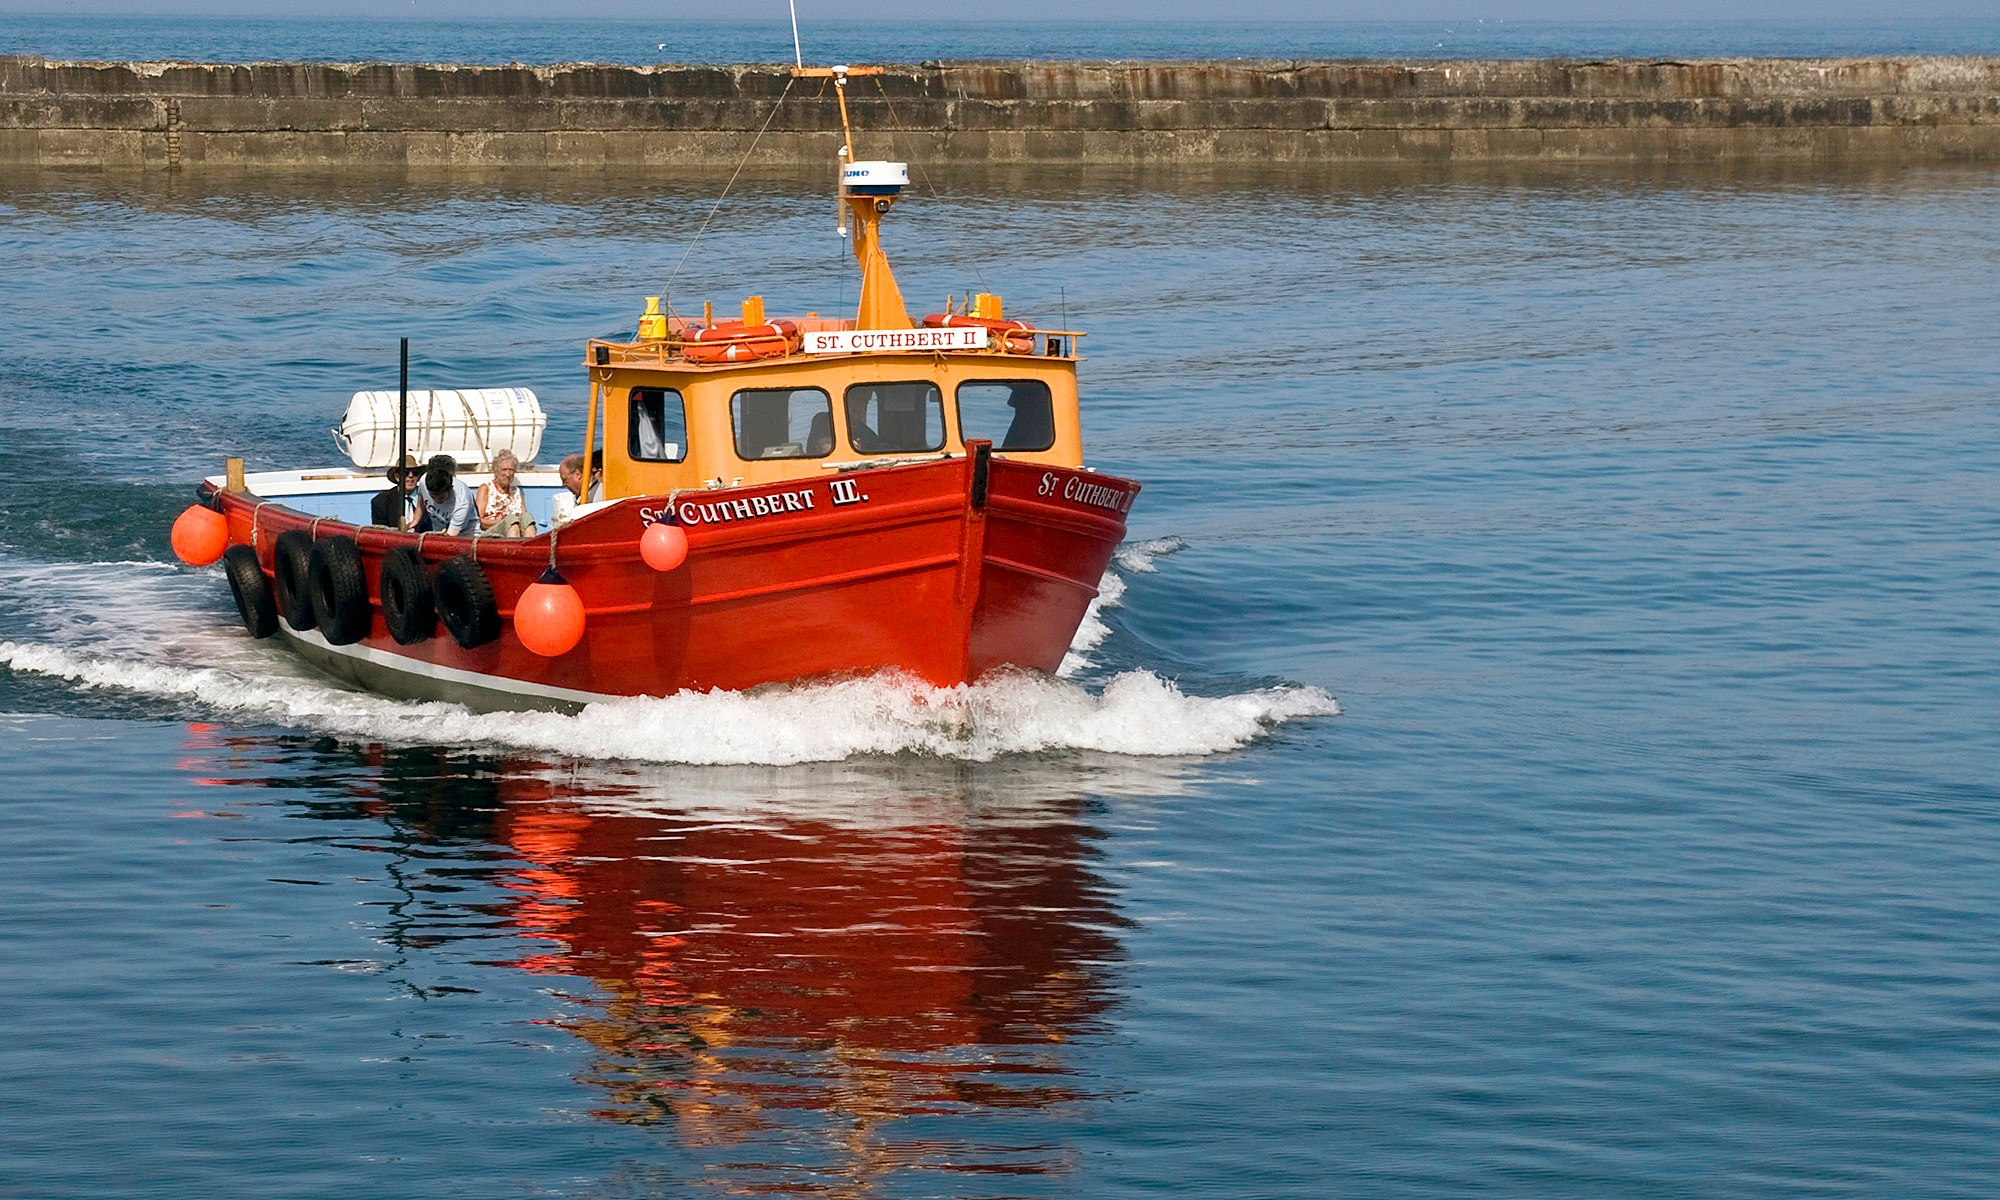 St. Cuthbert II at Seahouses